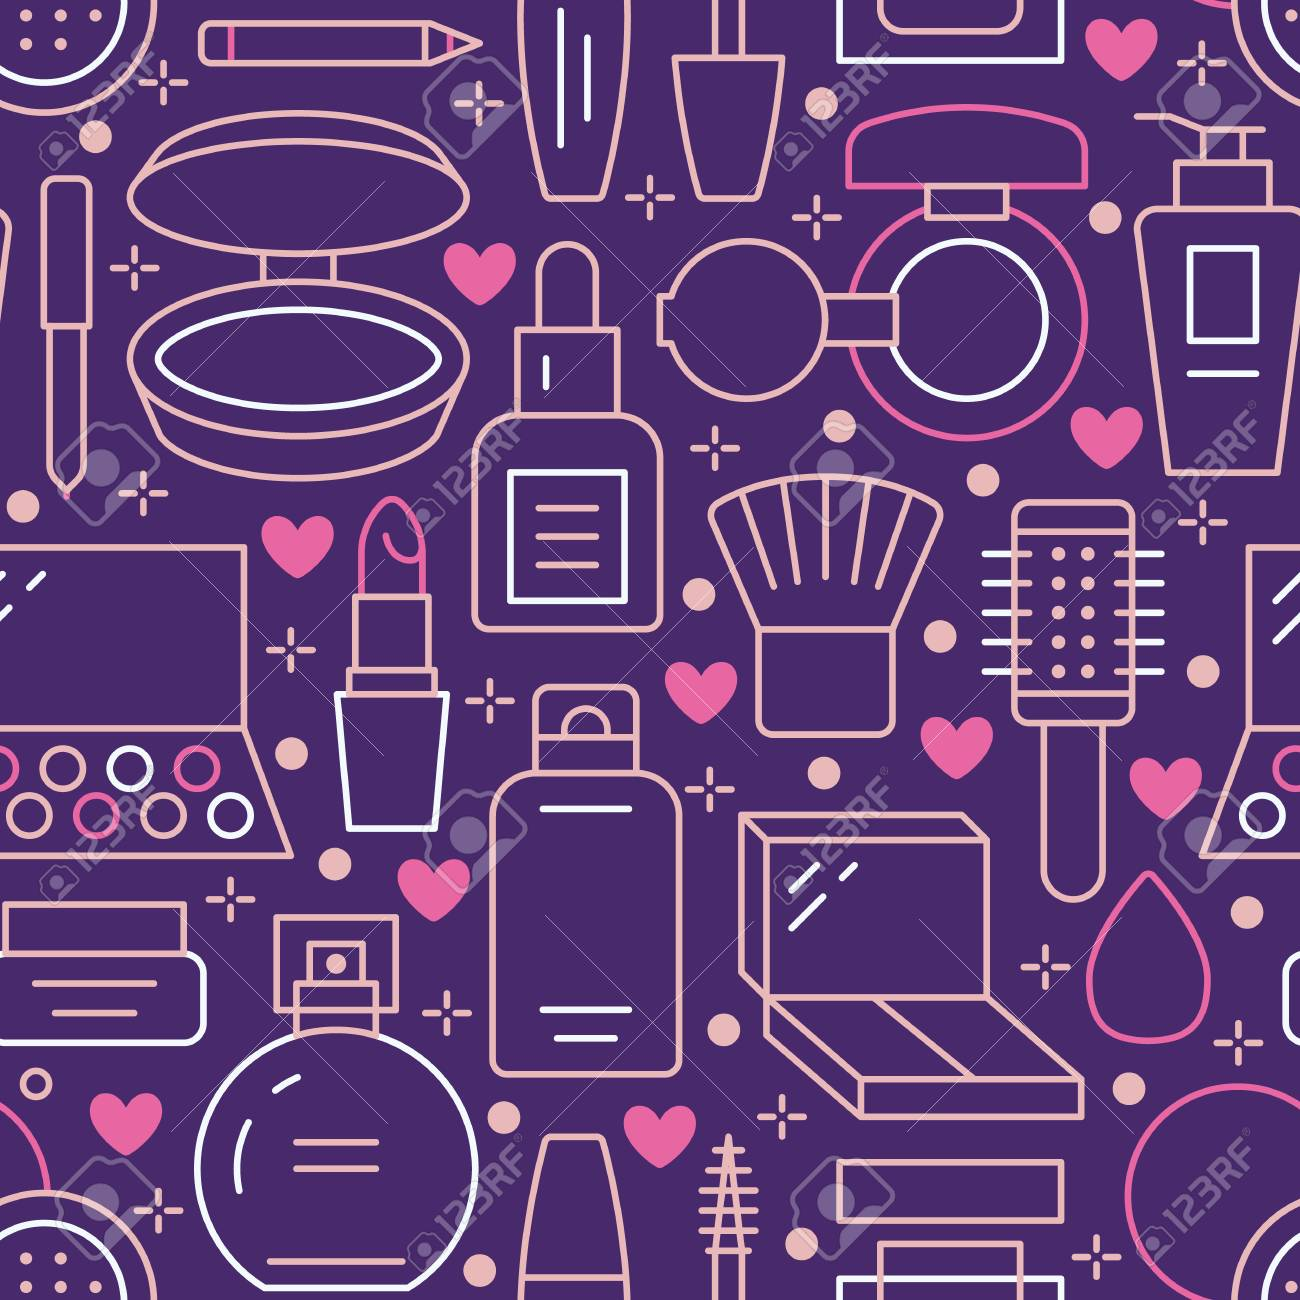 Makeup Beauty Care Purple Pink Seamless Pattern With Flat Line Royalty Free Cliparts Vectors And Stock Illustration Image 110438208